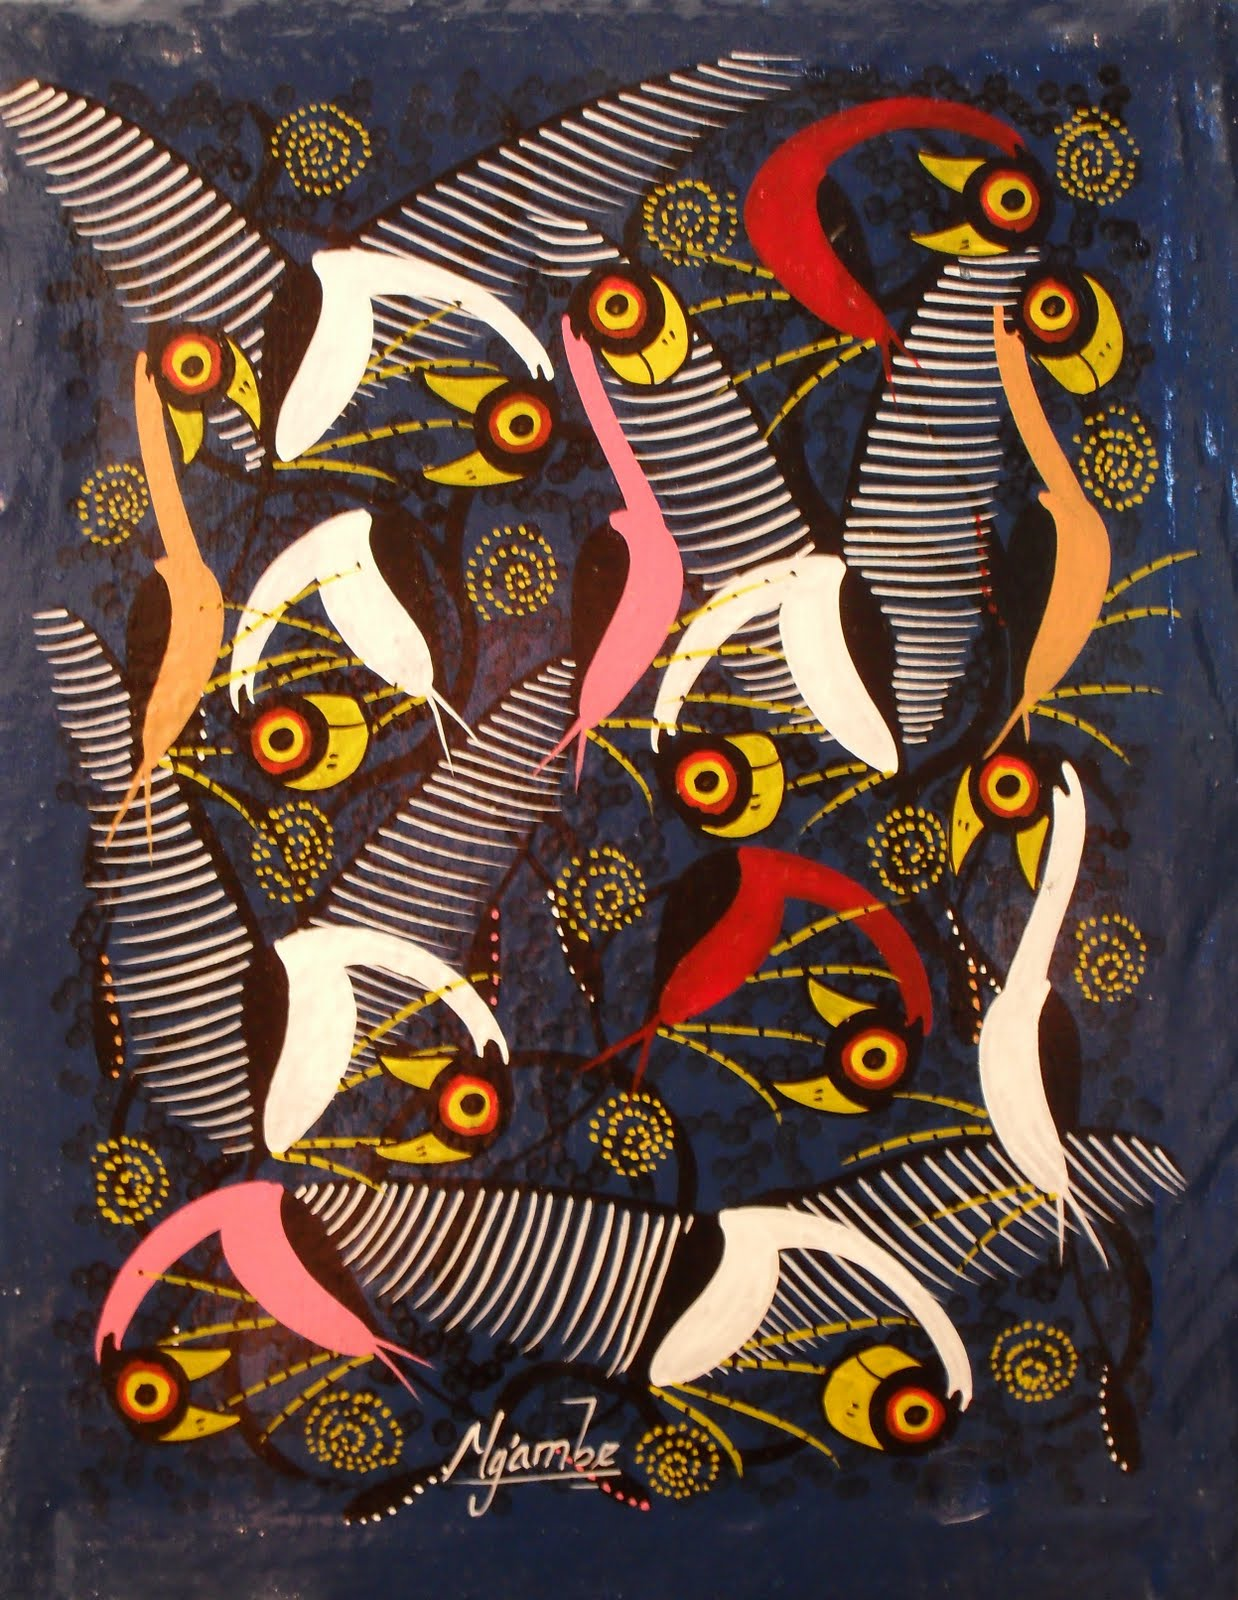 tingatinga Tinga tinga is an art movement from tanzania that originated in the 1970s from the art style of the late edward saidi tingatinga today, hundreds of artists produce work inspired by his vividly coloured paintings of animals, cultural narratives and elaborate designs against flat colour backgrounds.